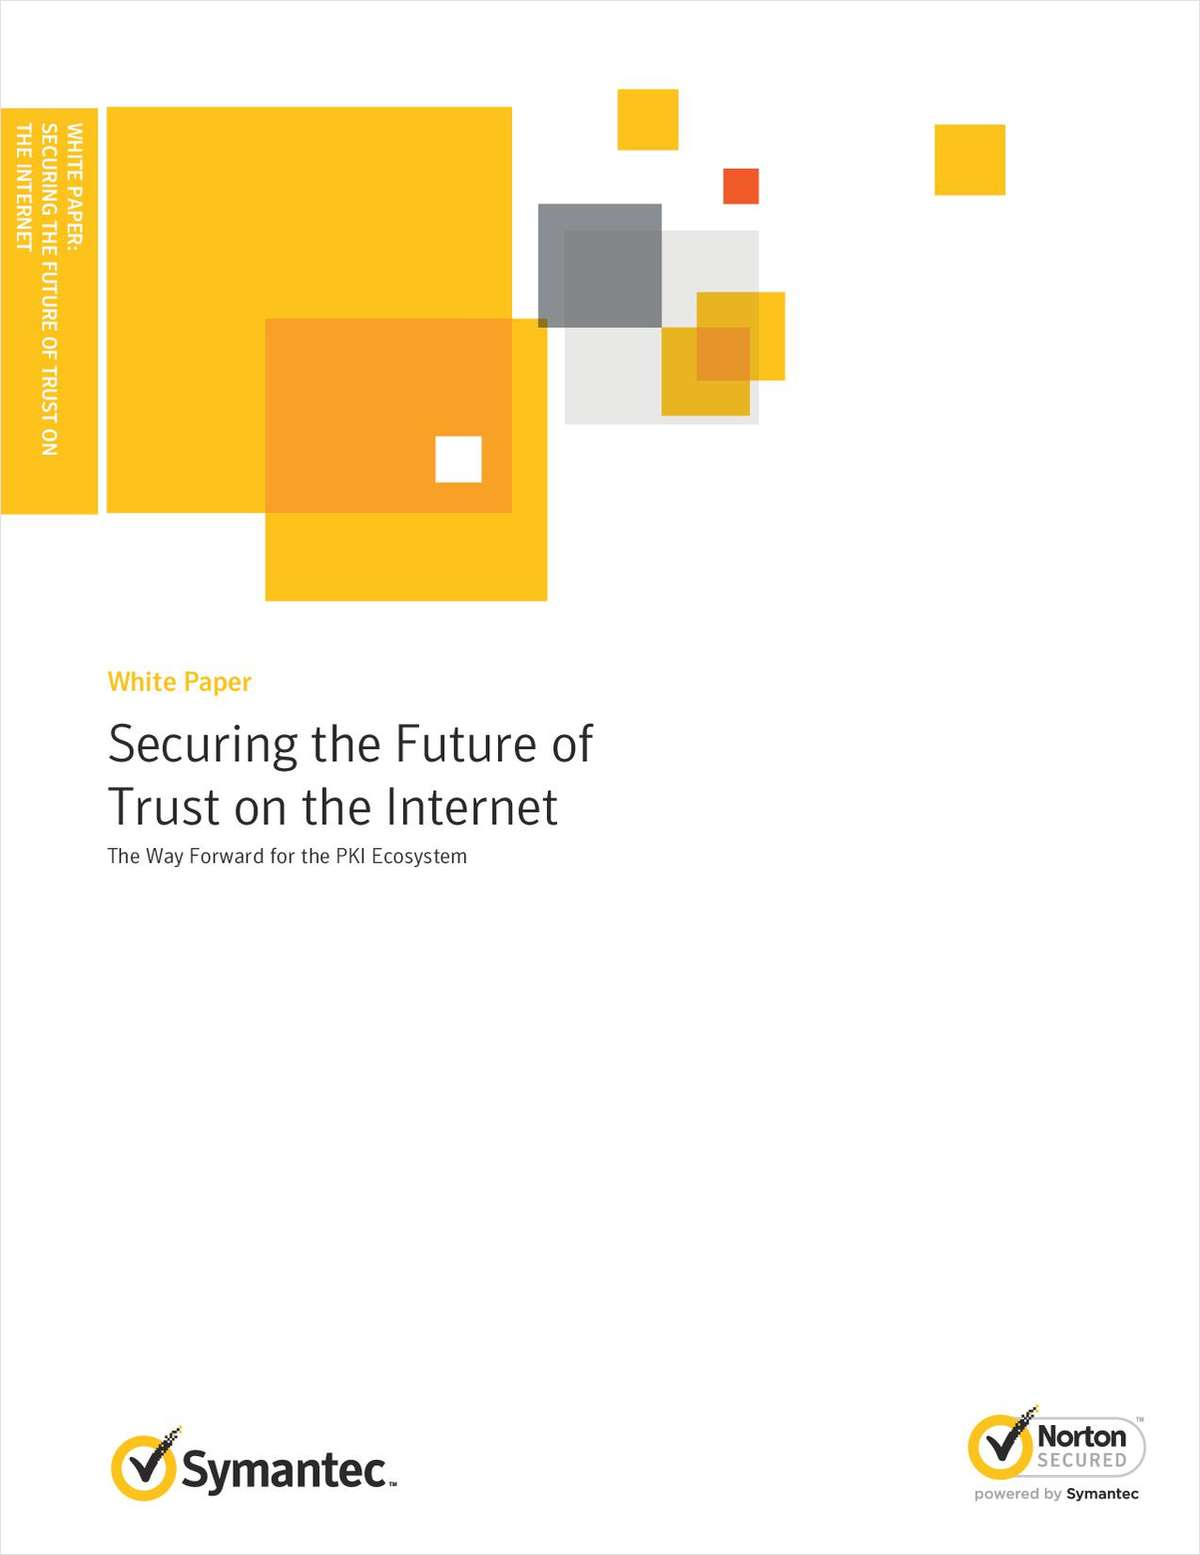 Securing the Future of Trust on the Internet